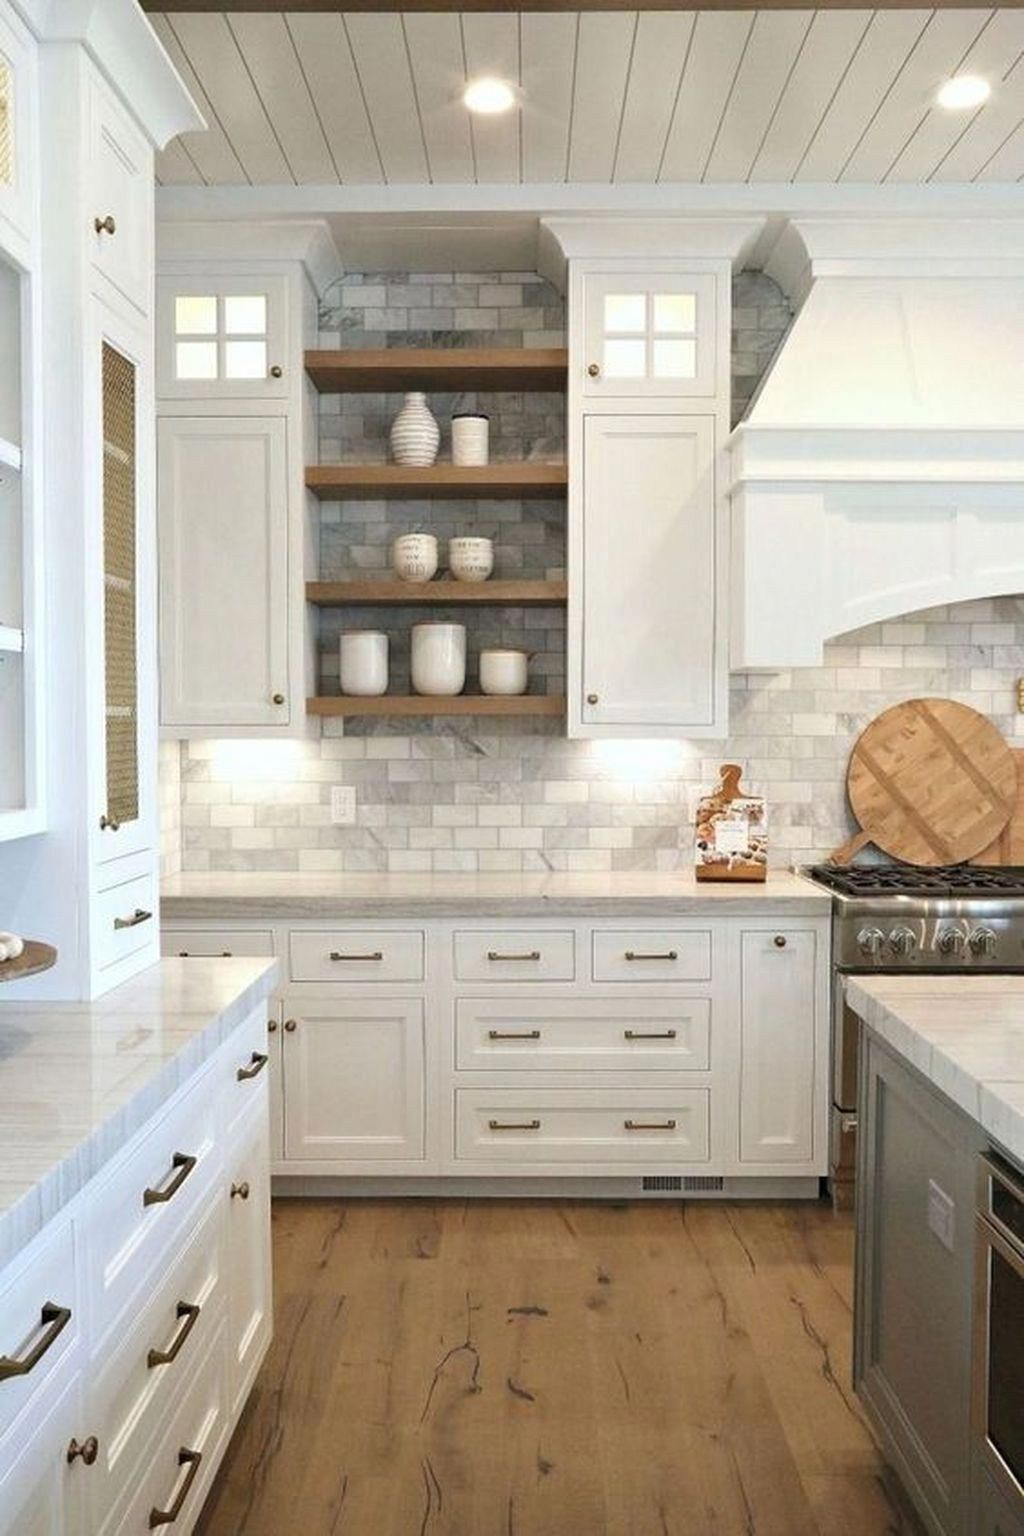 Best More Ideas Diy Rustic Kitchen Decor Accessories Marble 400 x 300